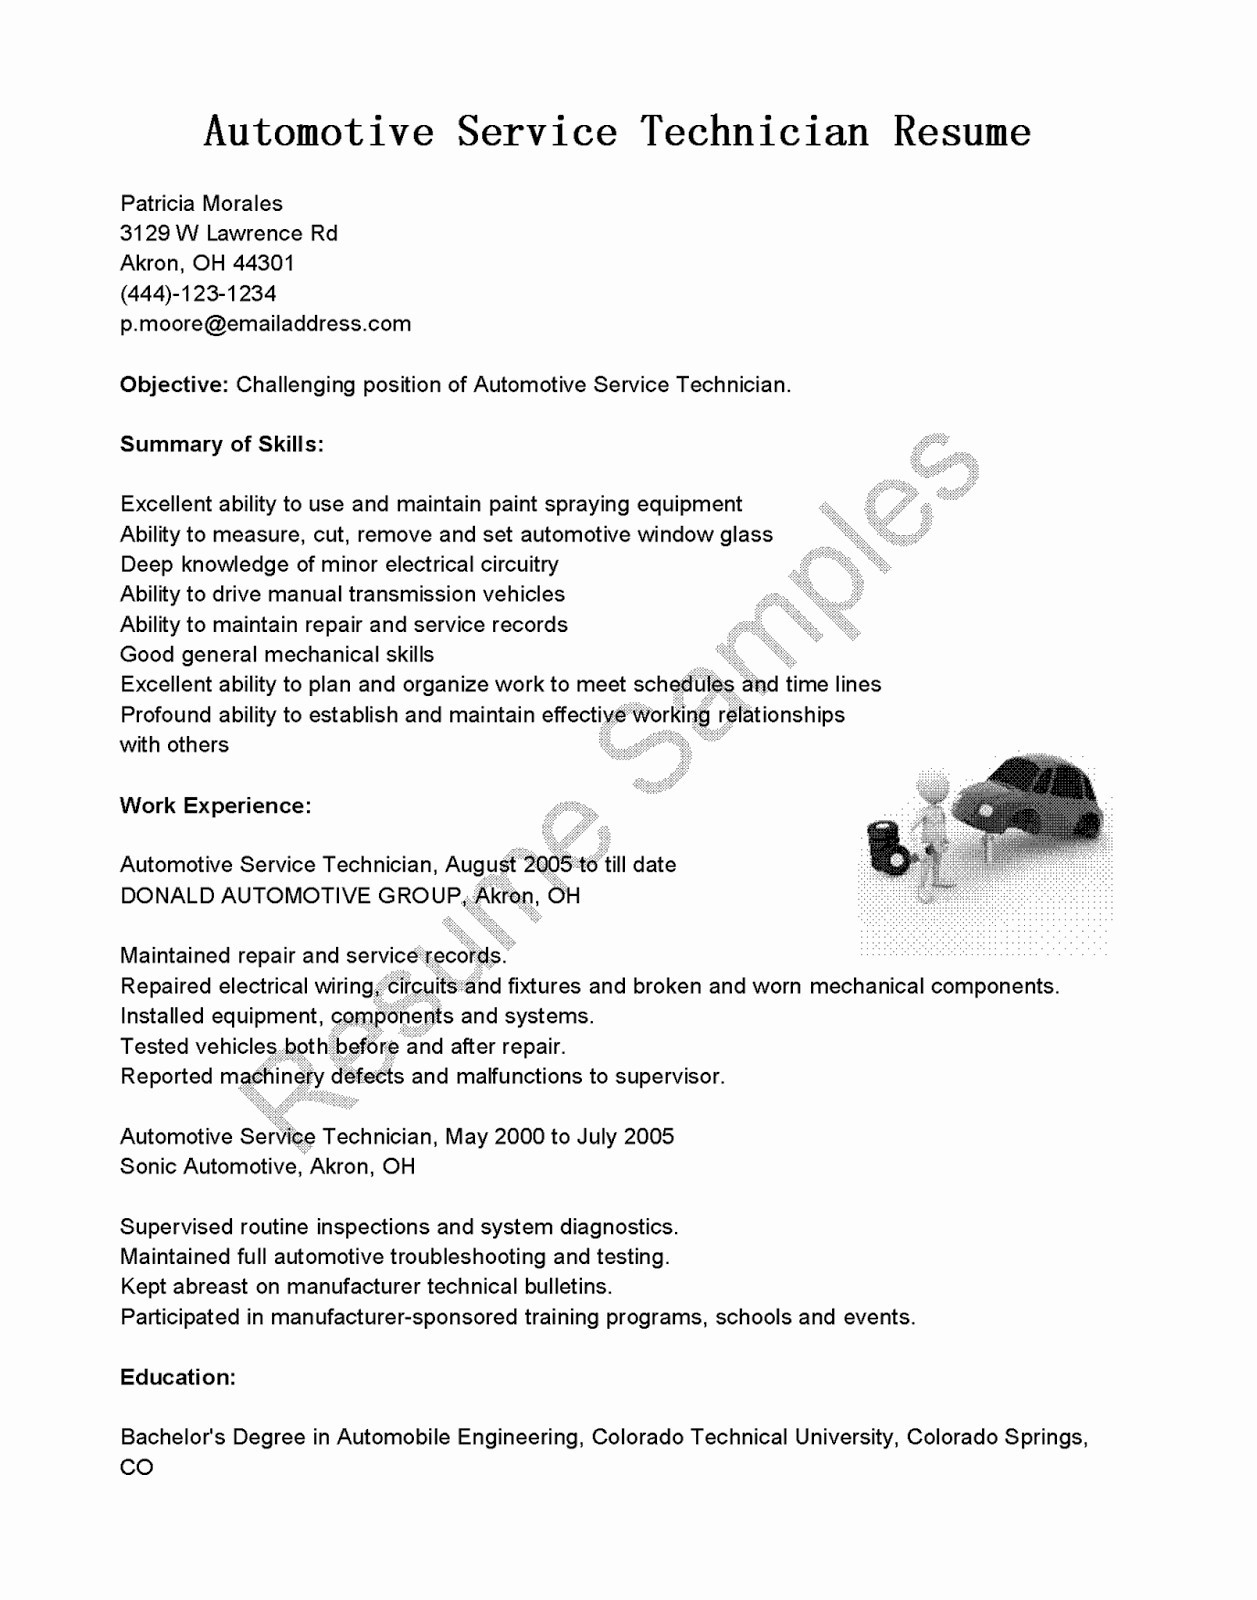 Best Engineering Resume - Master Technician Resume Lovely Surgical Tech Resume Best